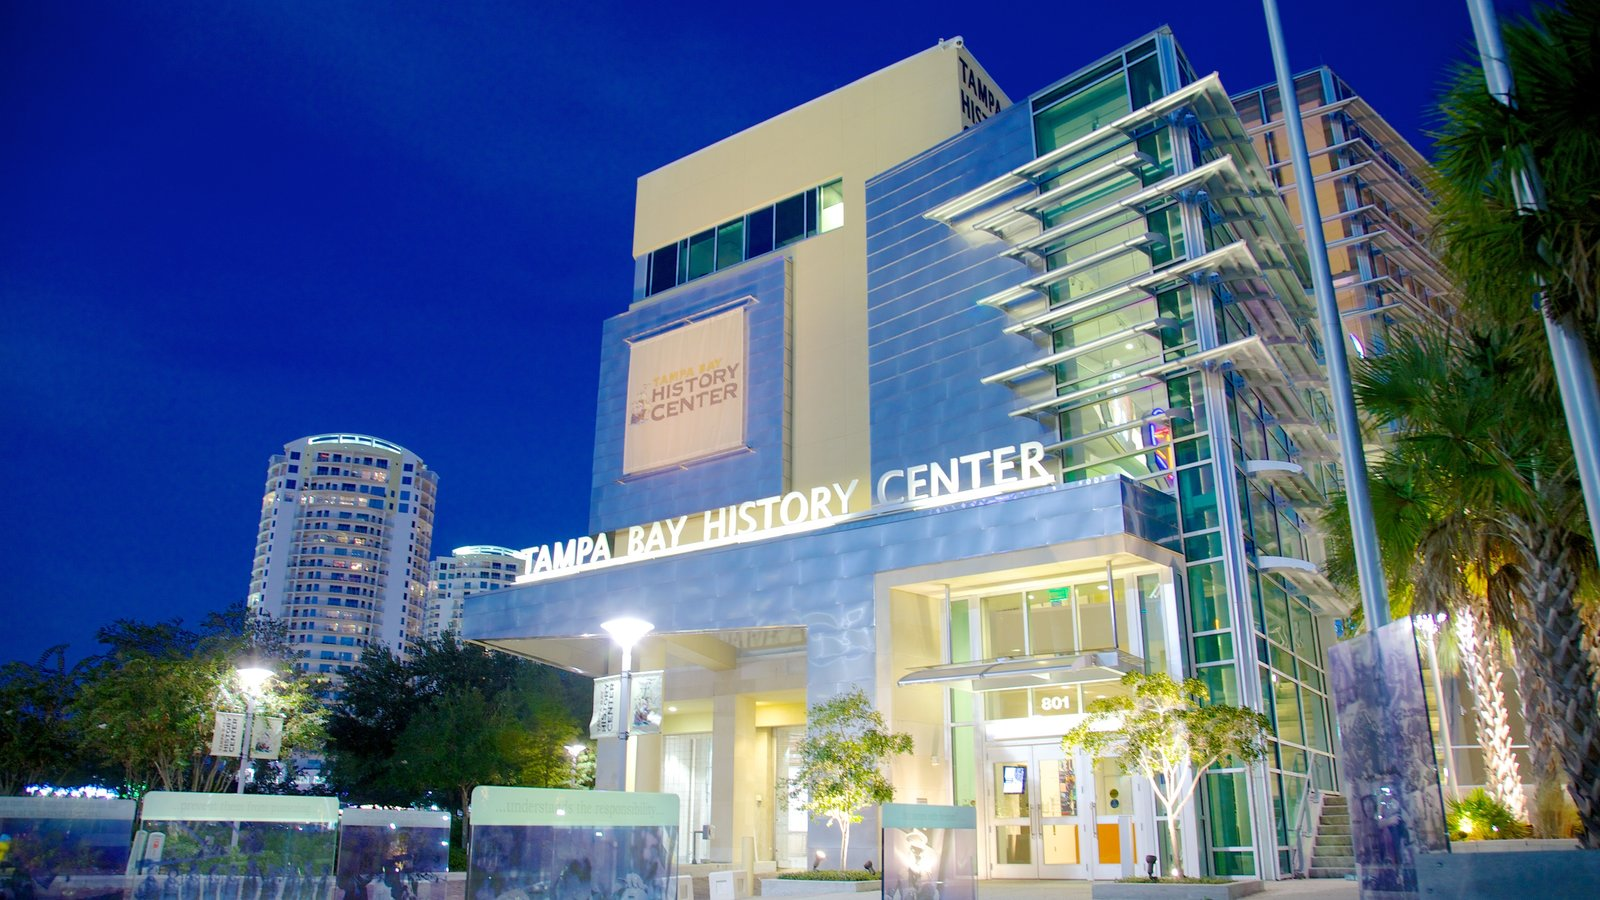 Tampa Bay History Center which includes a city and night scenes